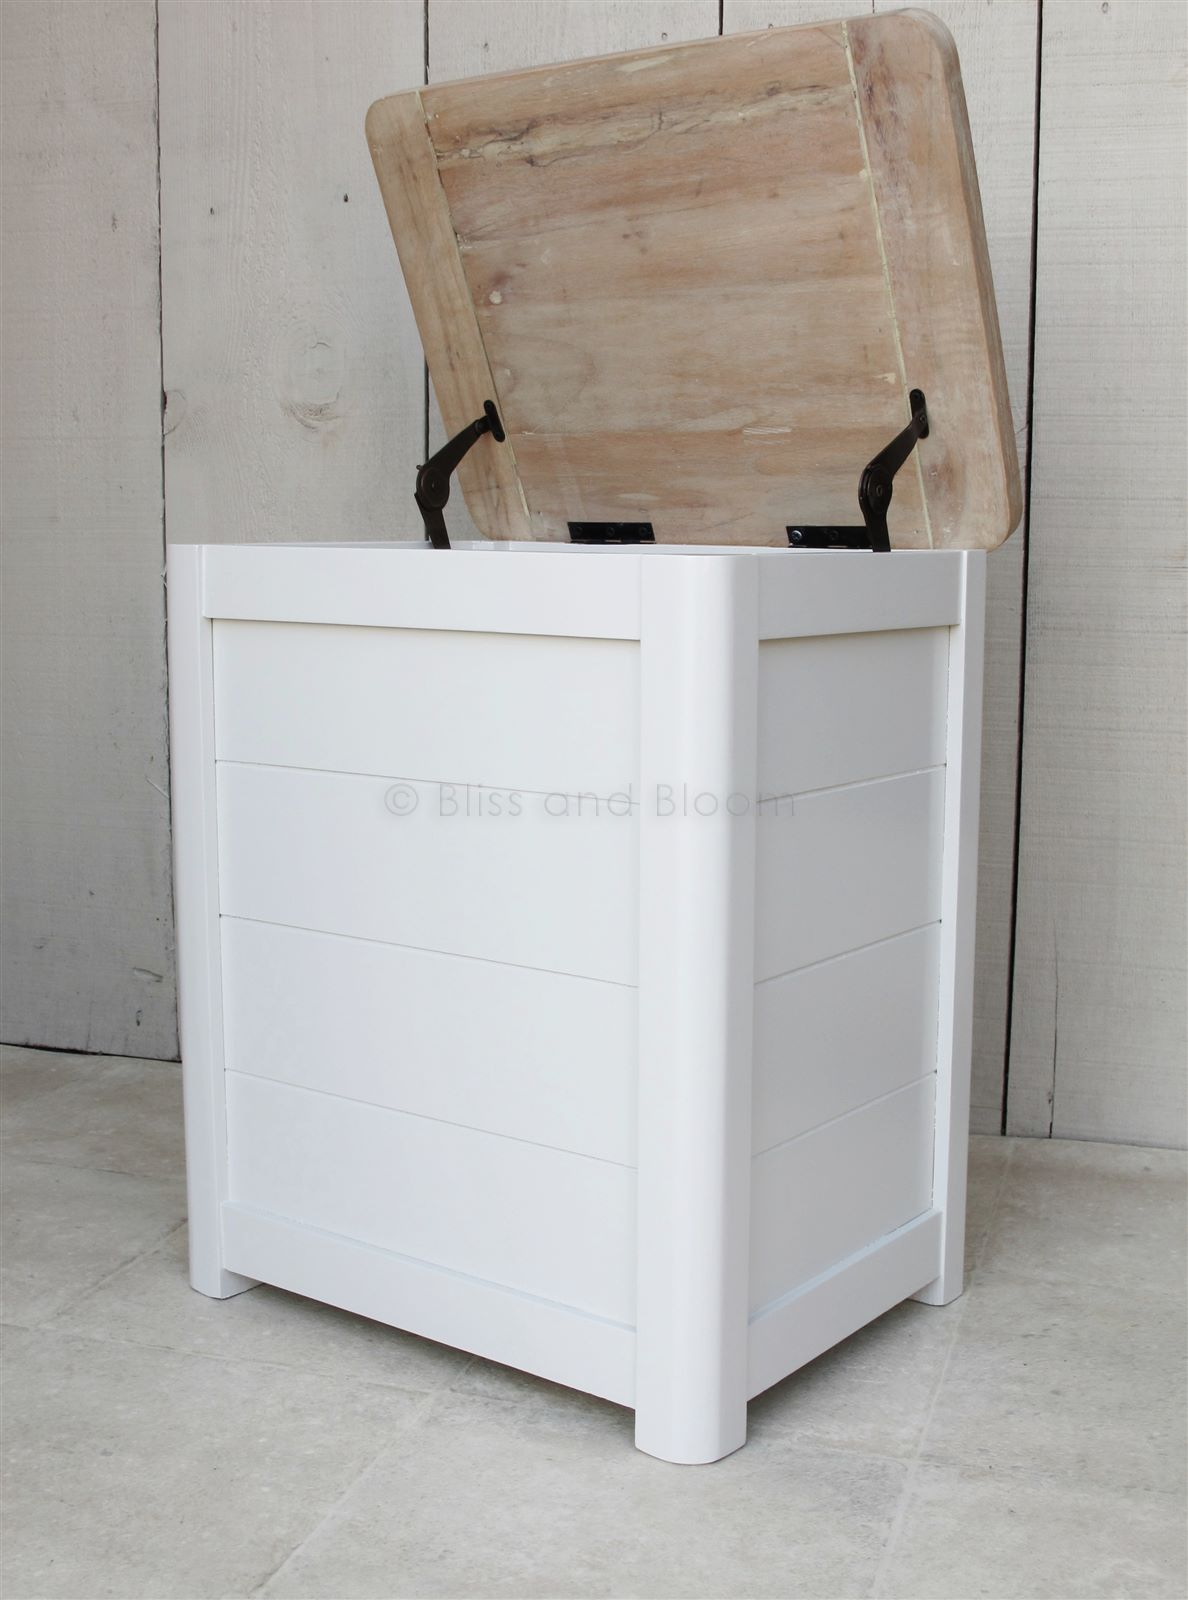 Wooden Laundry Linen Bin Small Bliss And Bloom Ltd